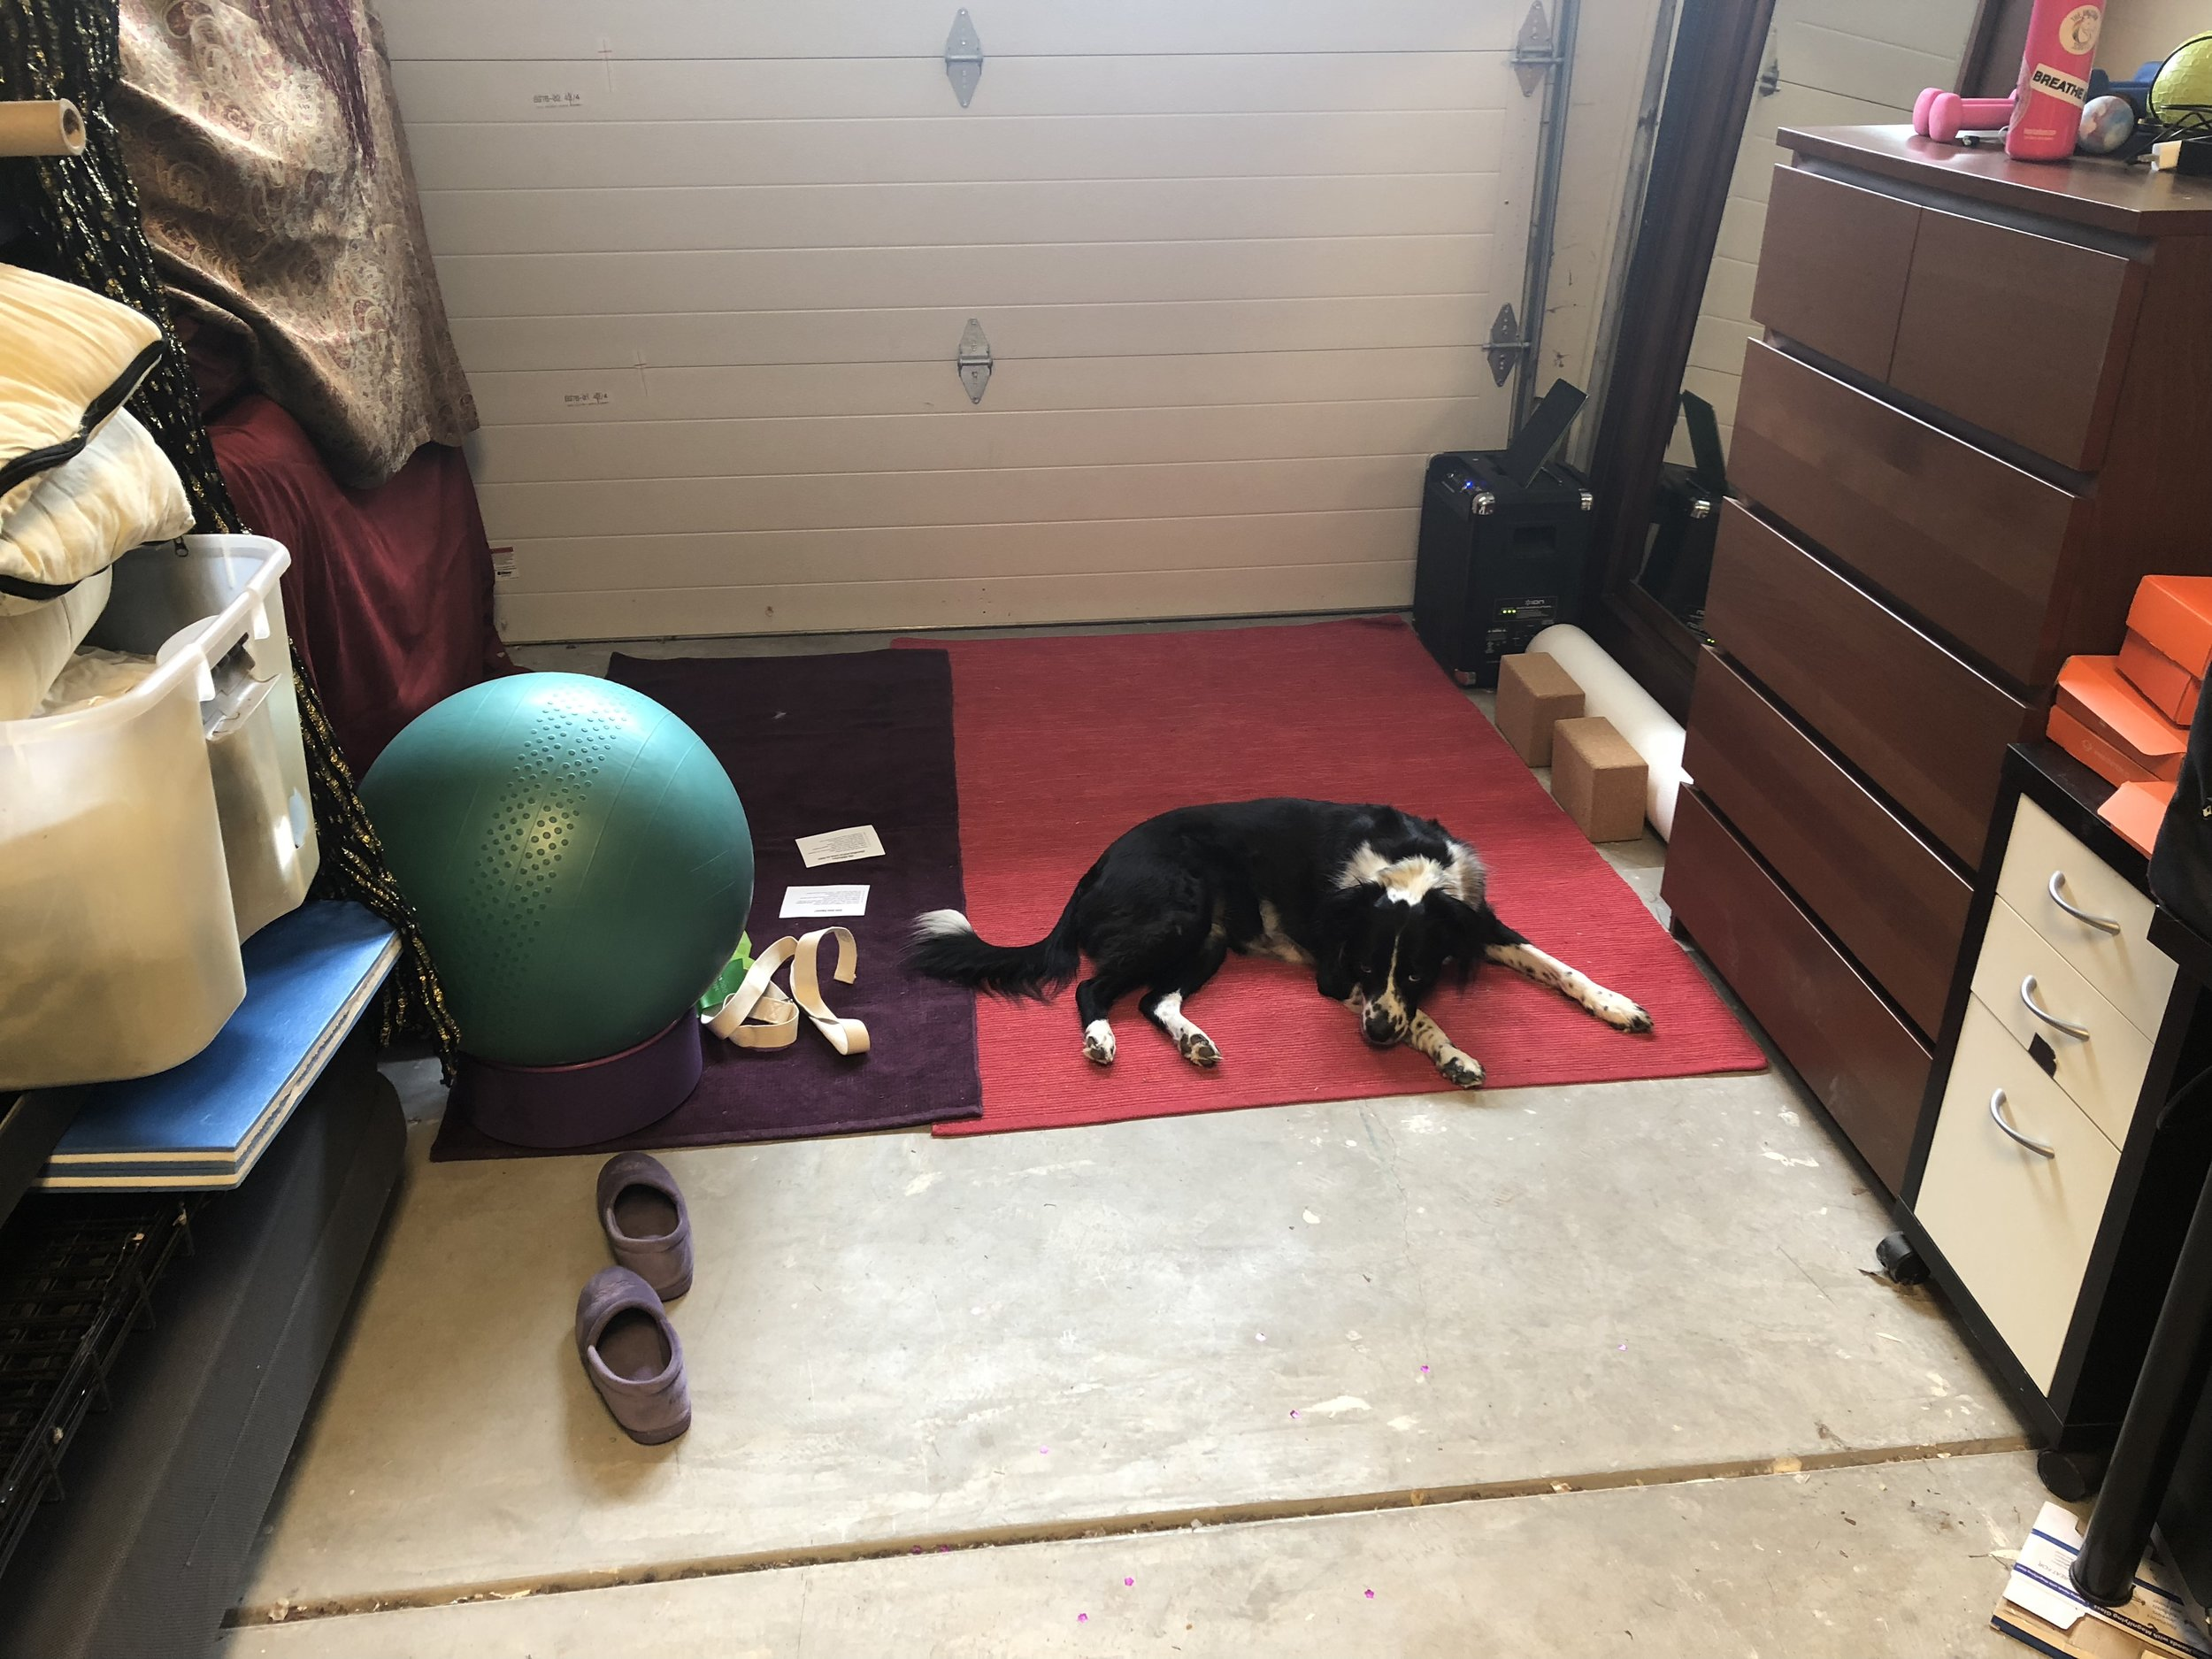 Leila approves of my home gym set up.